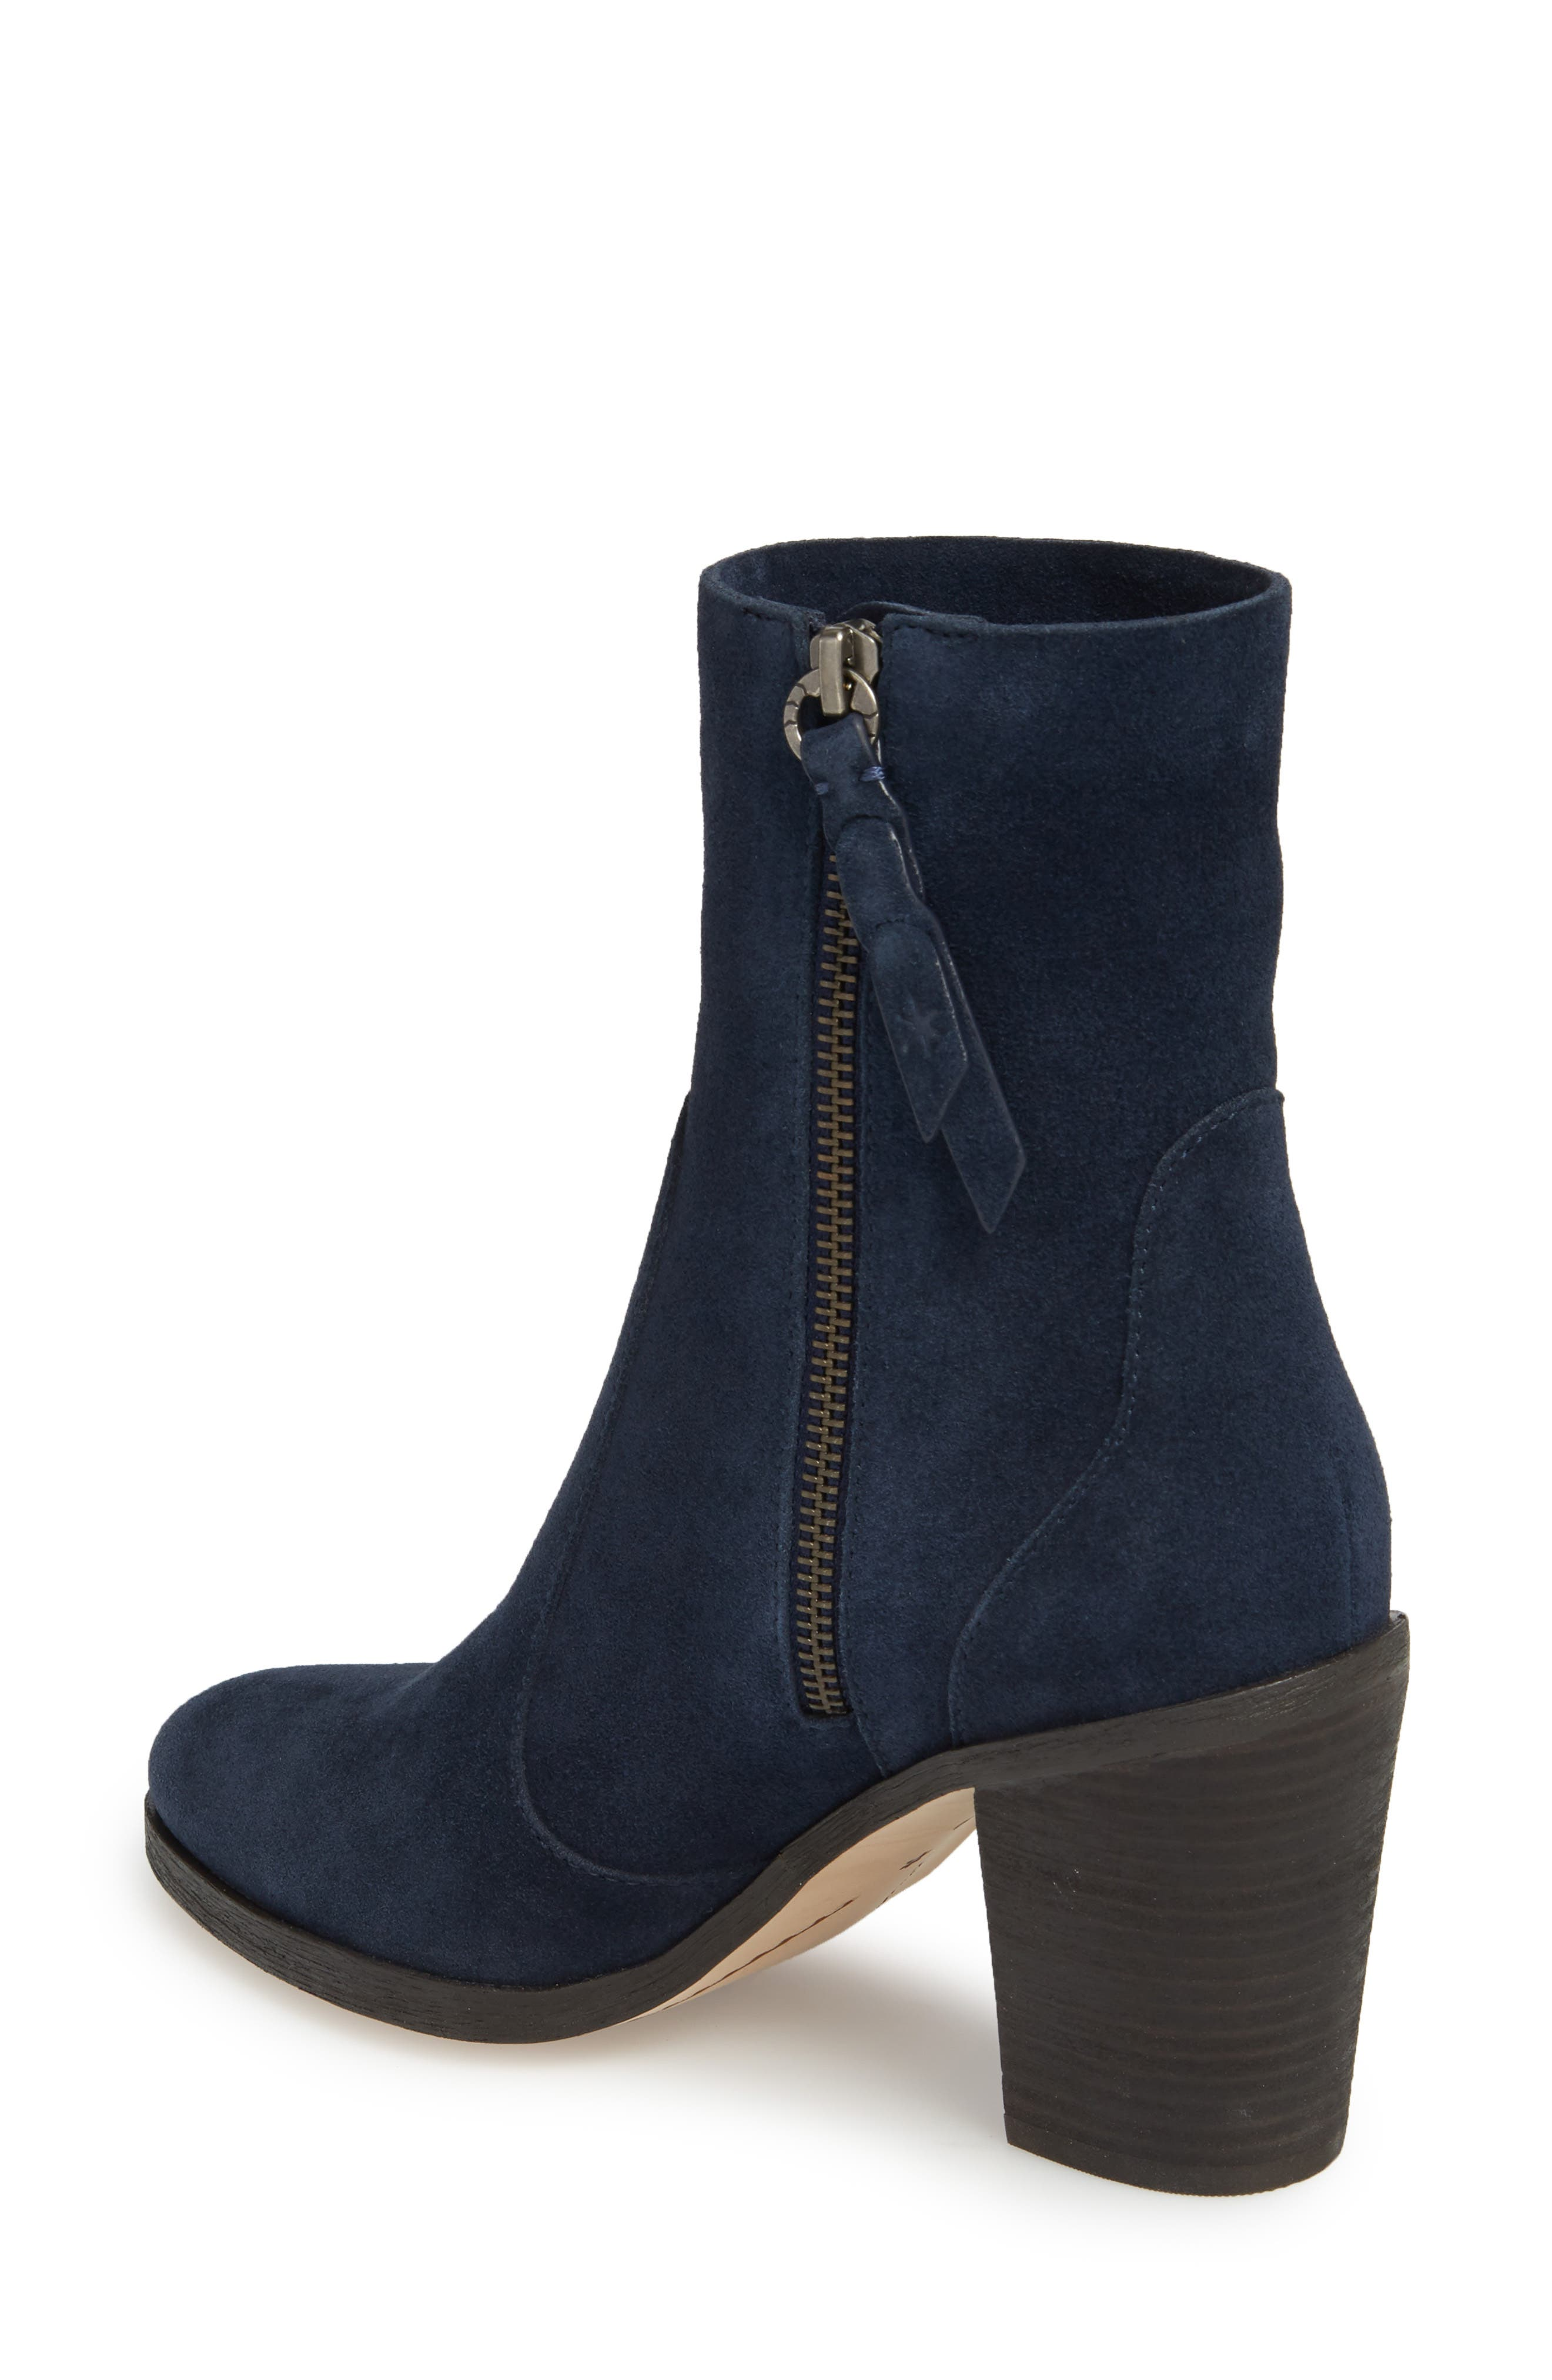 Roselyn II Almond Toe Bootie,                             Alternate thumbnail 2, color,                             Navy Suede